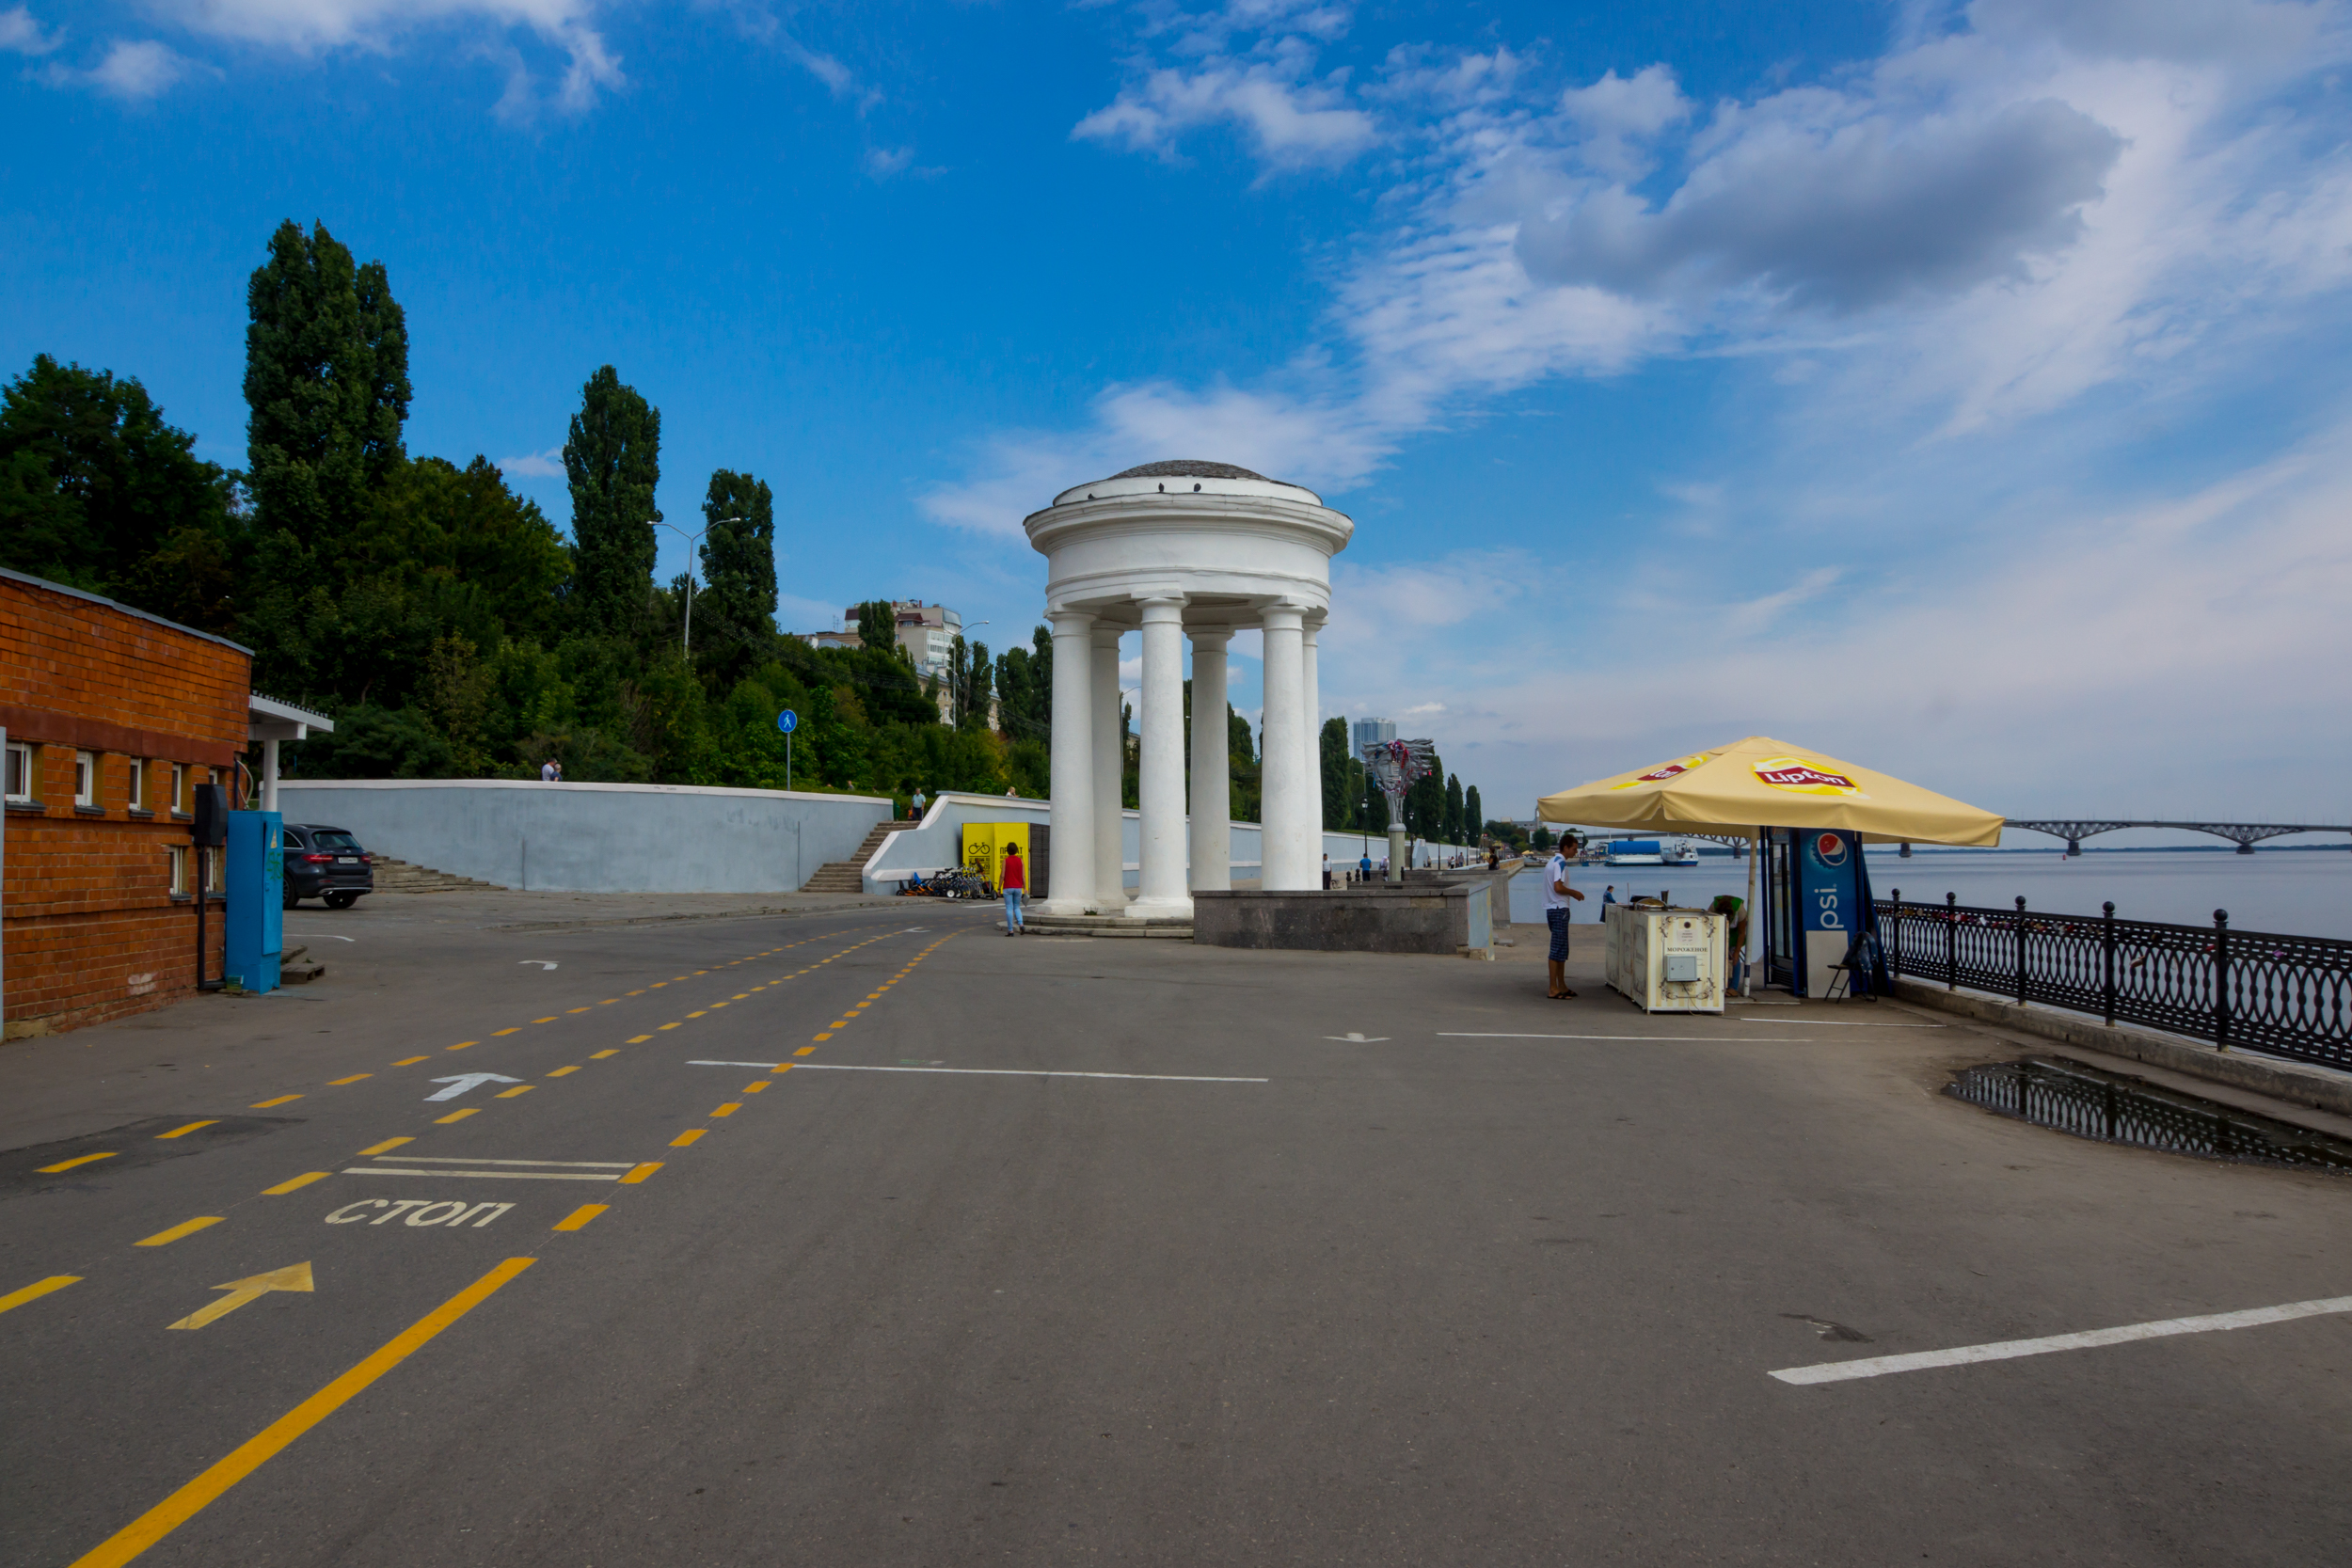 The rotunda at the Saratov promenade